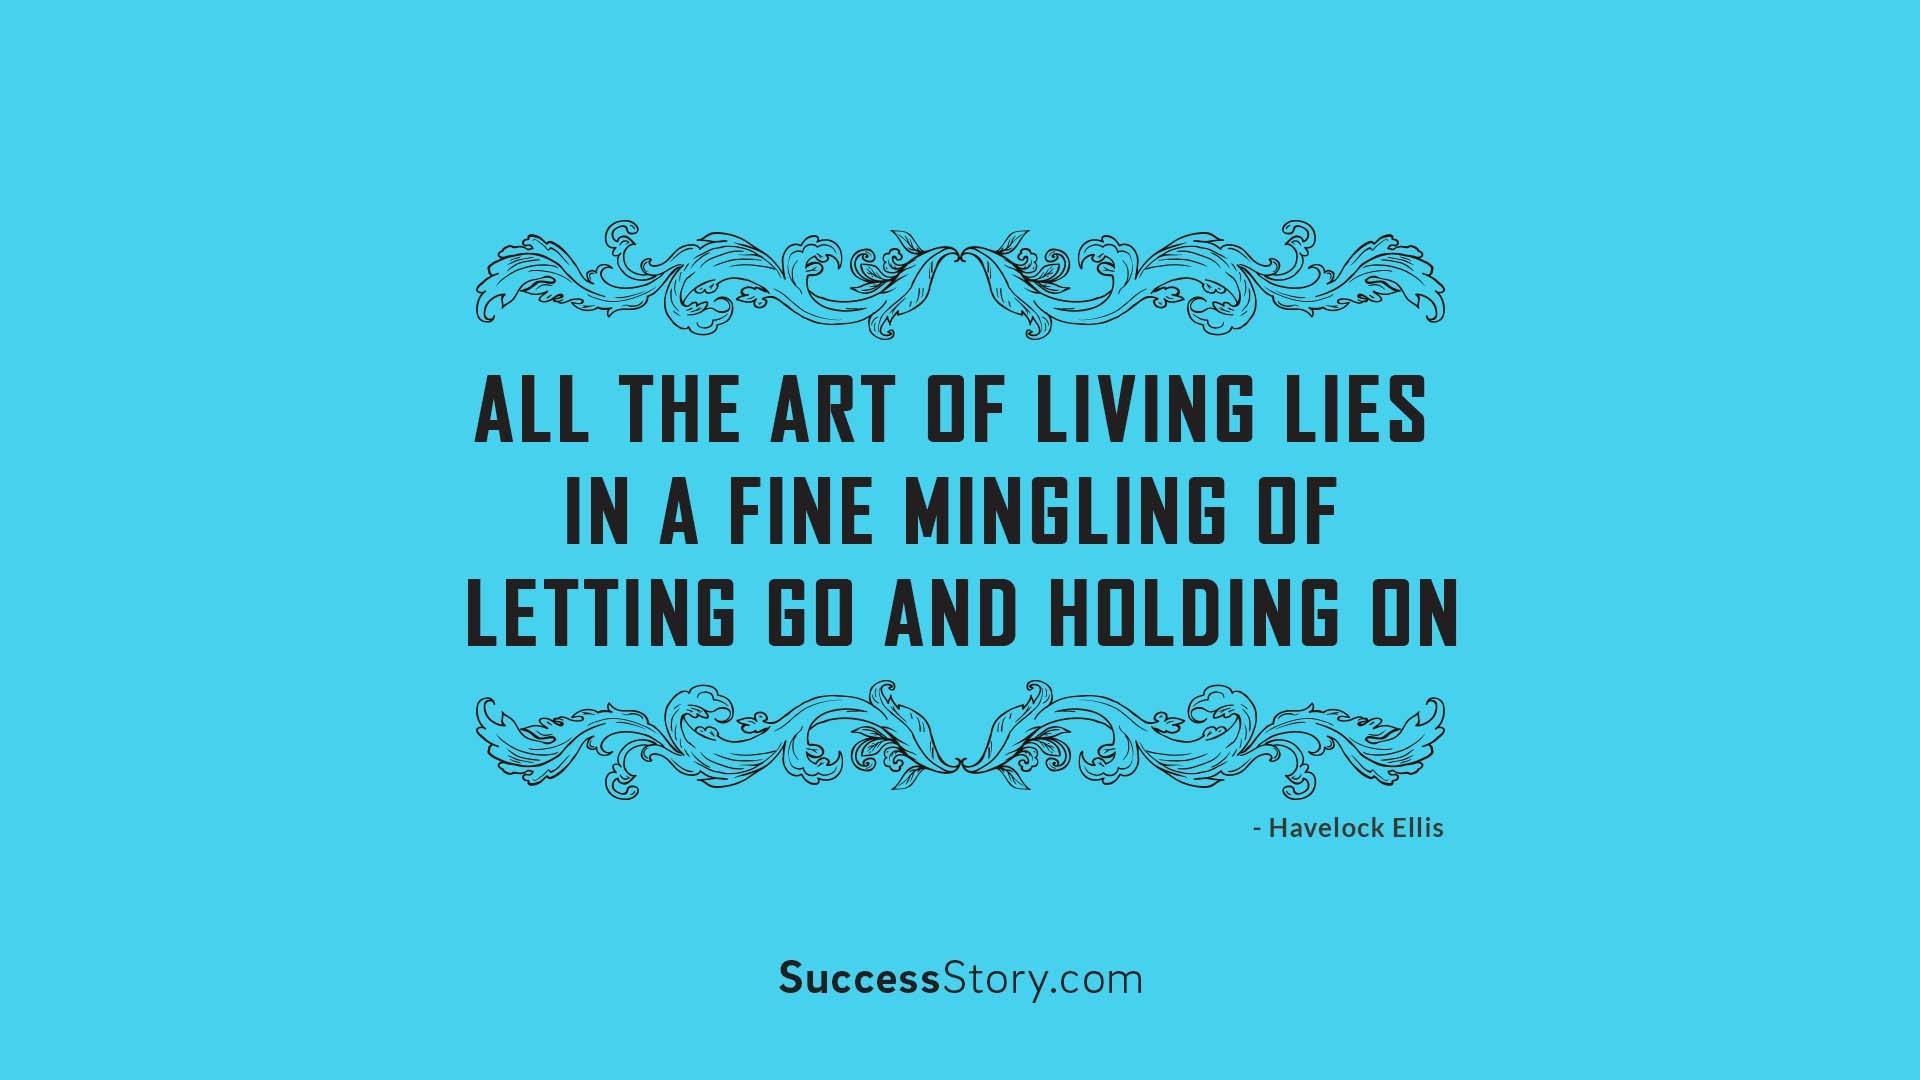 All the art of living